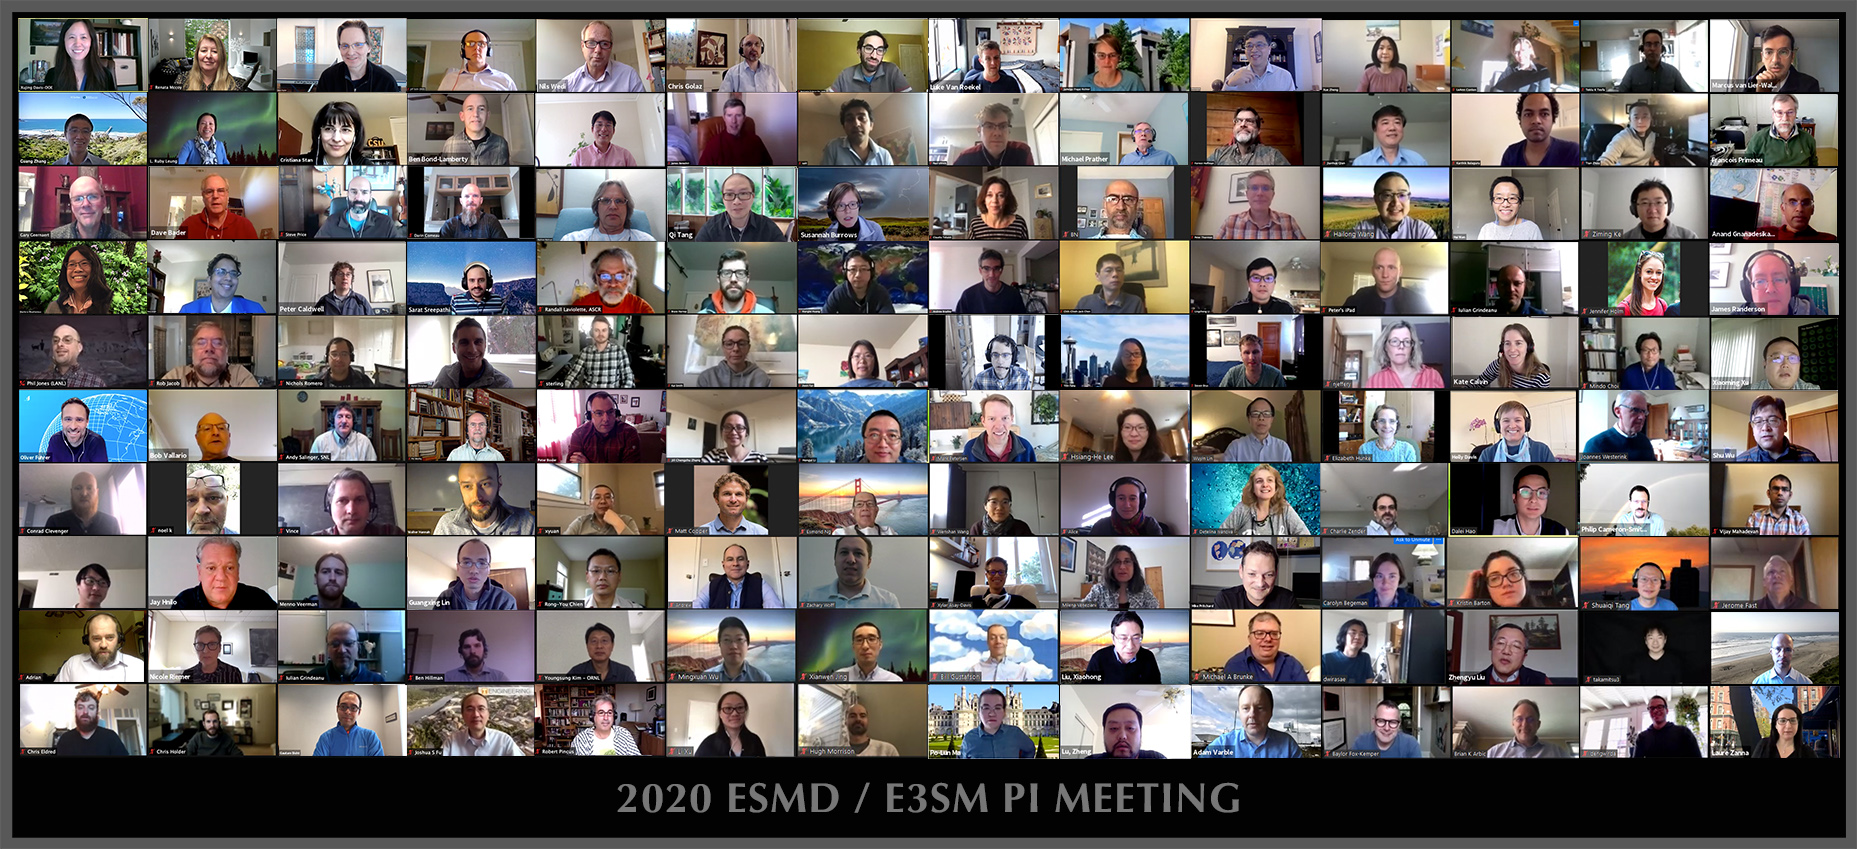 Virtual 2020 ESMD / E3SM PI Meeting